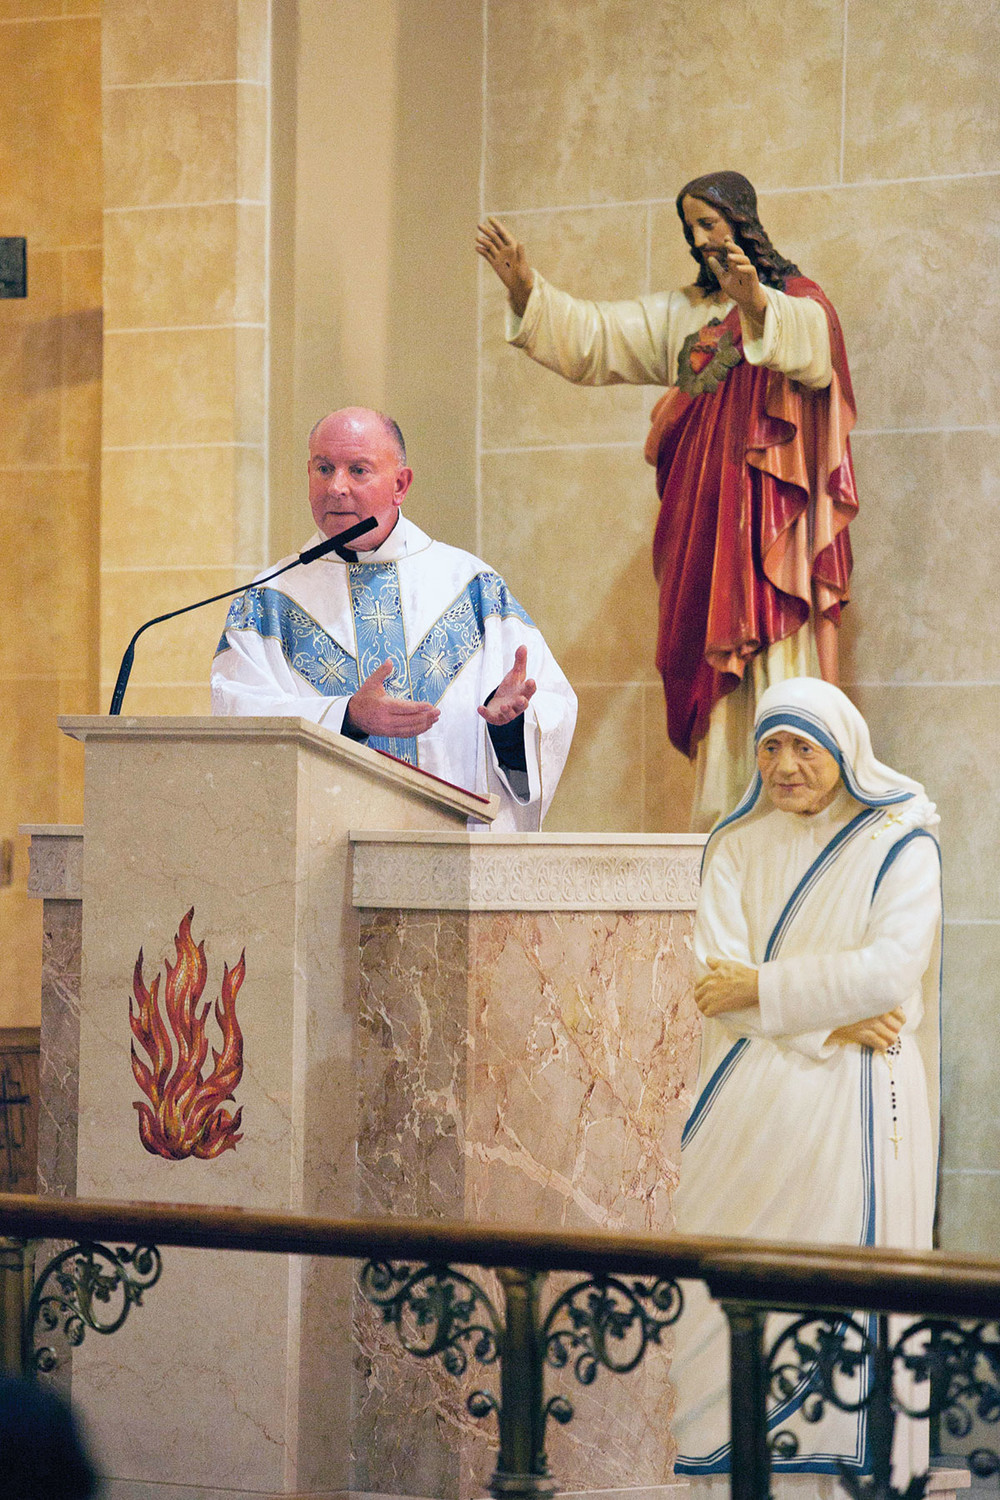 Father Damroth, pastor of St. Francis of Assisi and Sacred Heart churches, announces the name of the new merged parish in Newburgh as the Parish of St. Mother Teresa of Calcutta, the first parish in the archdiocese named after St. Mother Teresa. A statue of St. Mother Teresa was unveiled as the parish's new name was announced.